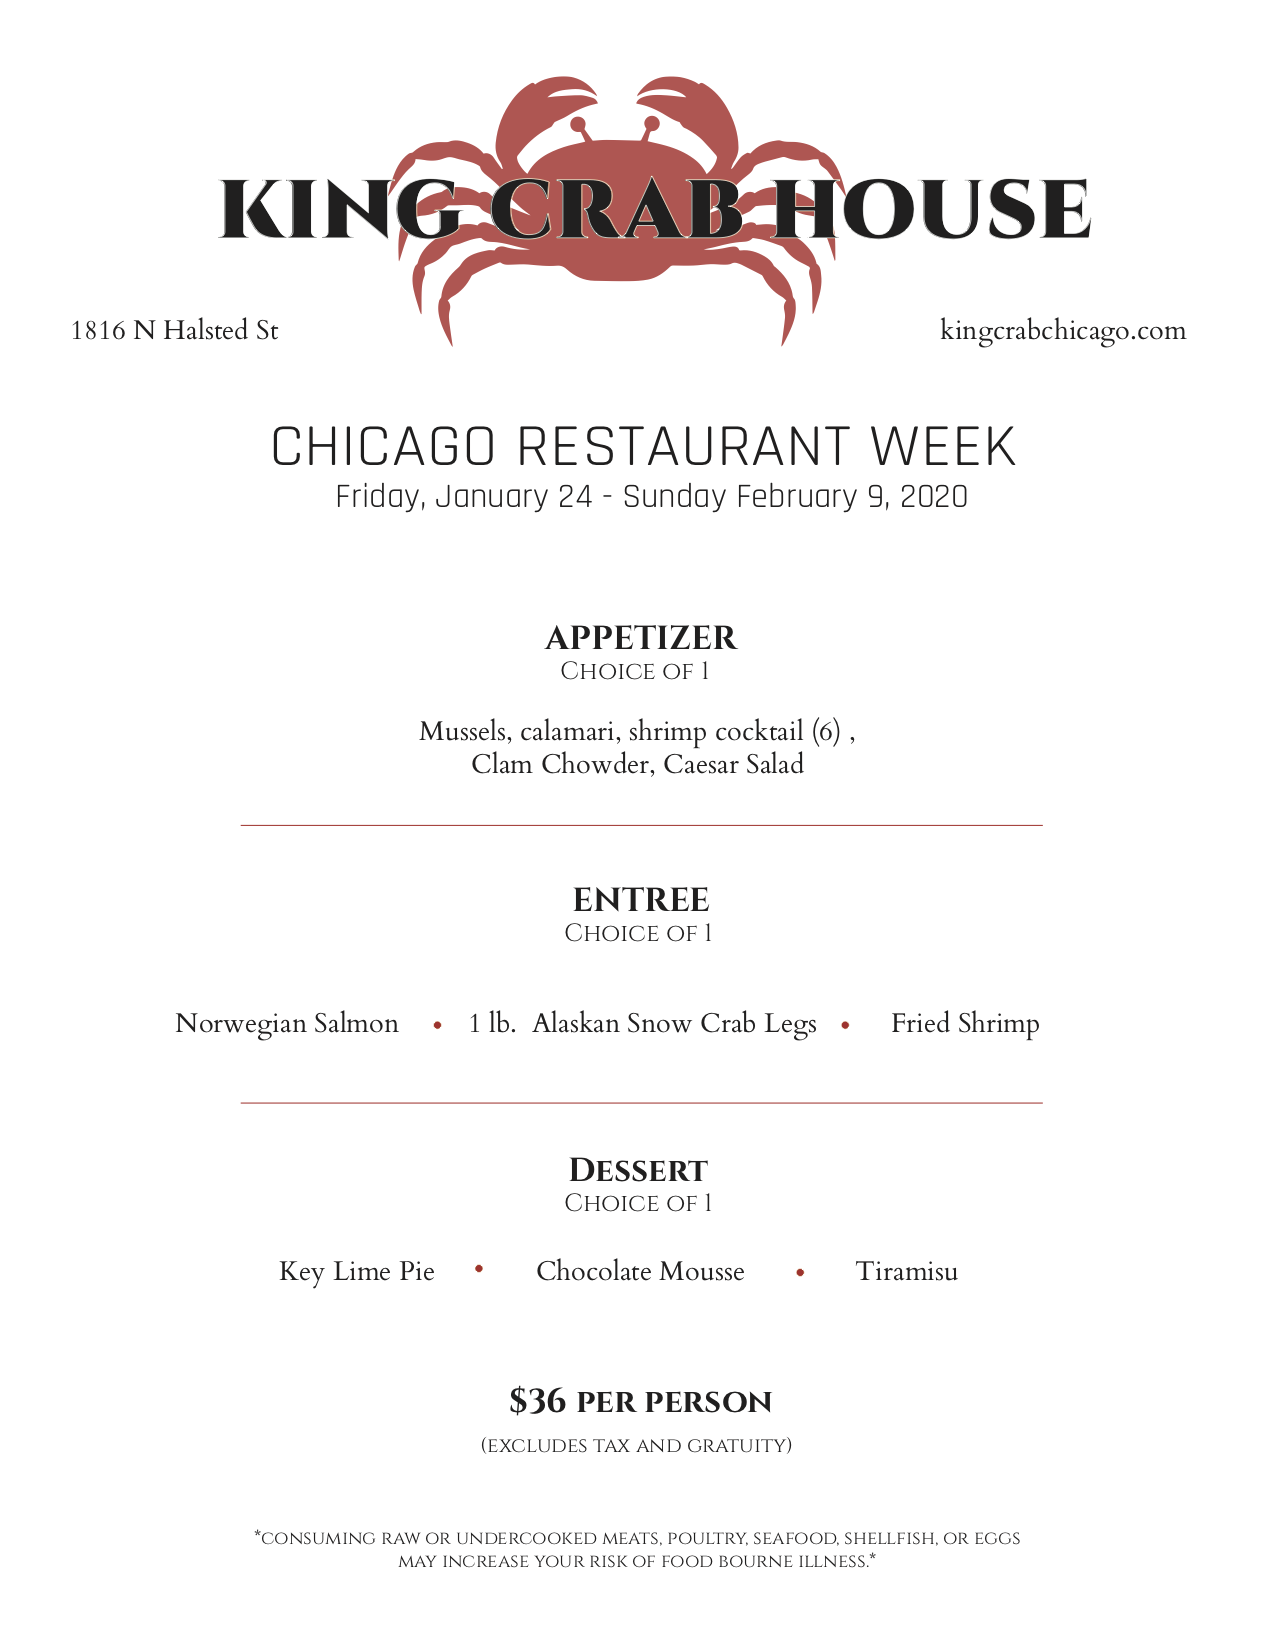 king crab house chicago restaurant week